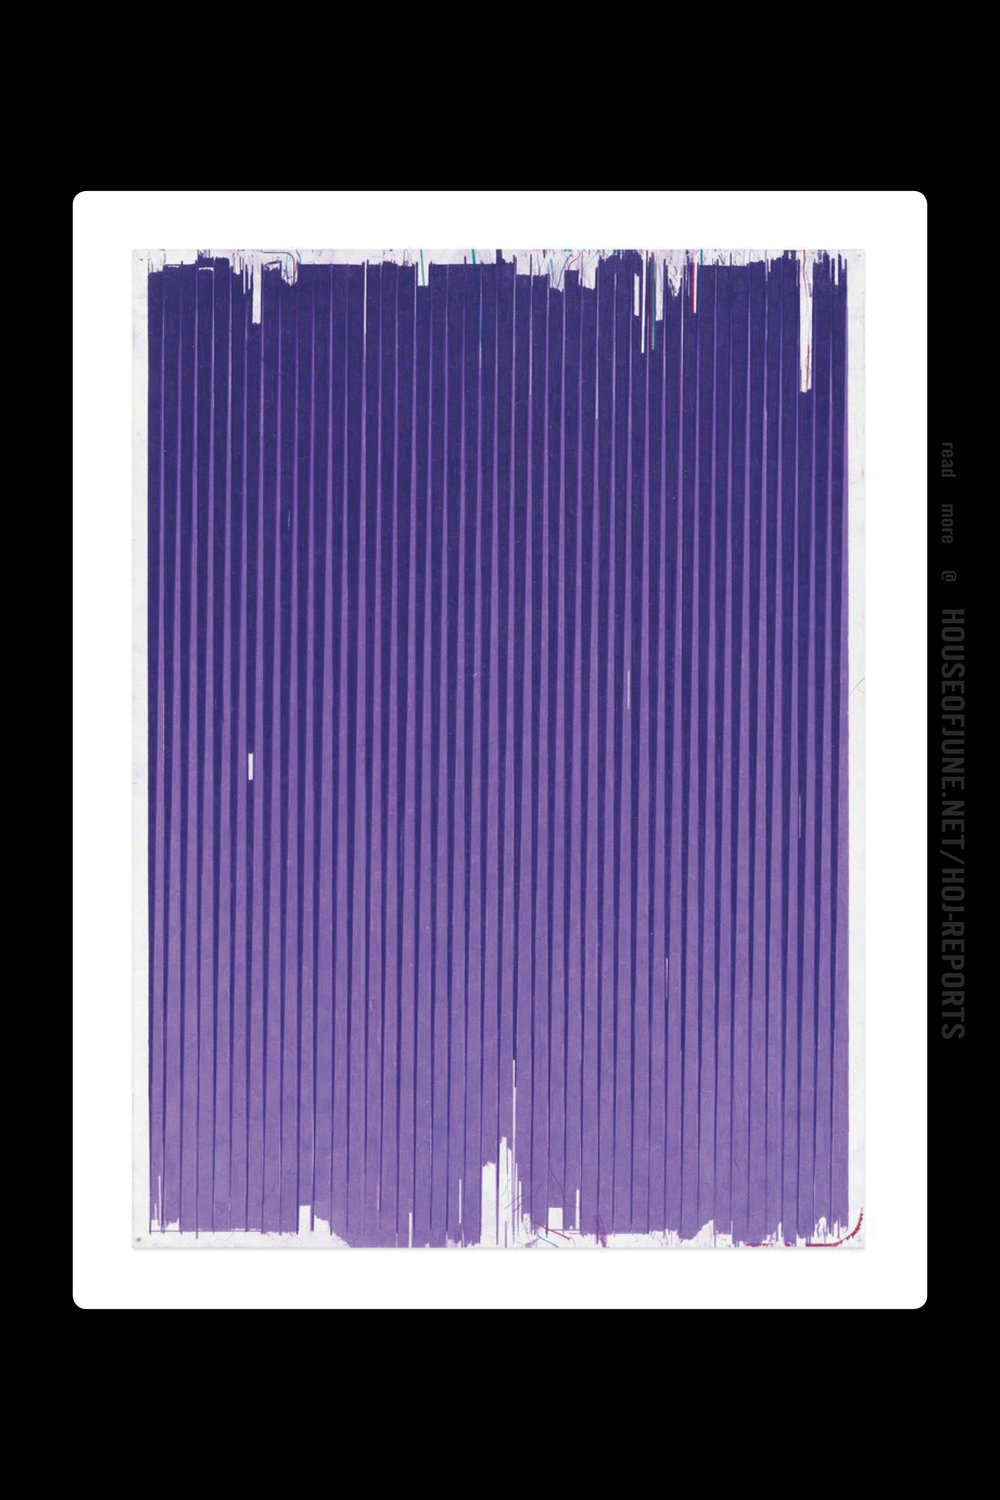 Andrew Brischler   (Colored Pencil and Graphite on Paper)  Lonely Planet (Dark Violet / Parma Violet), 2016-2017